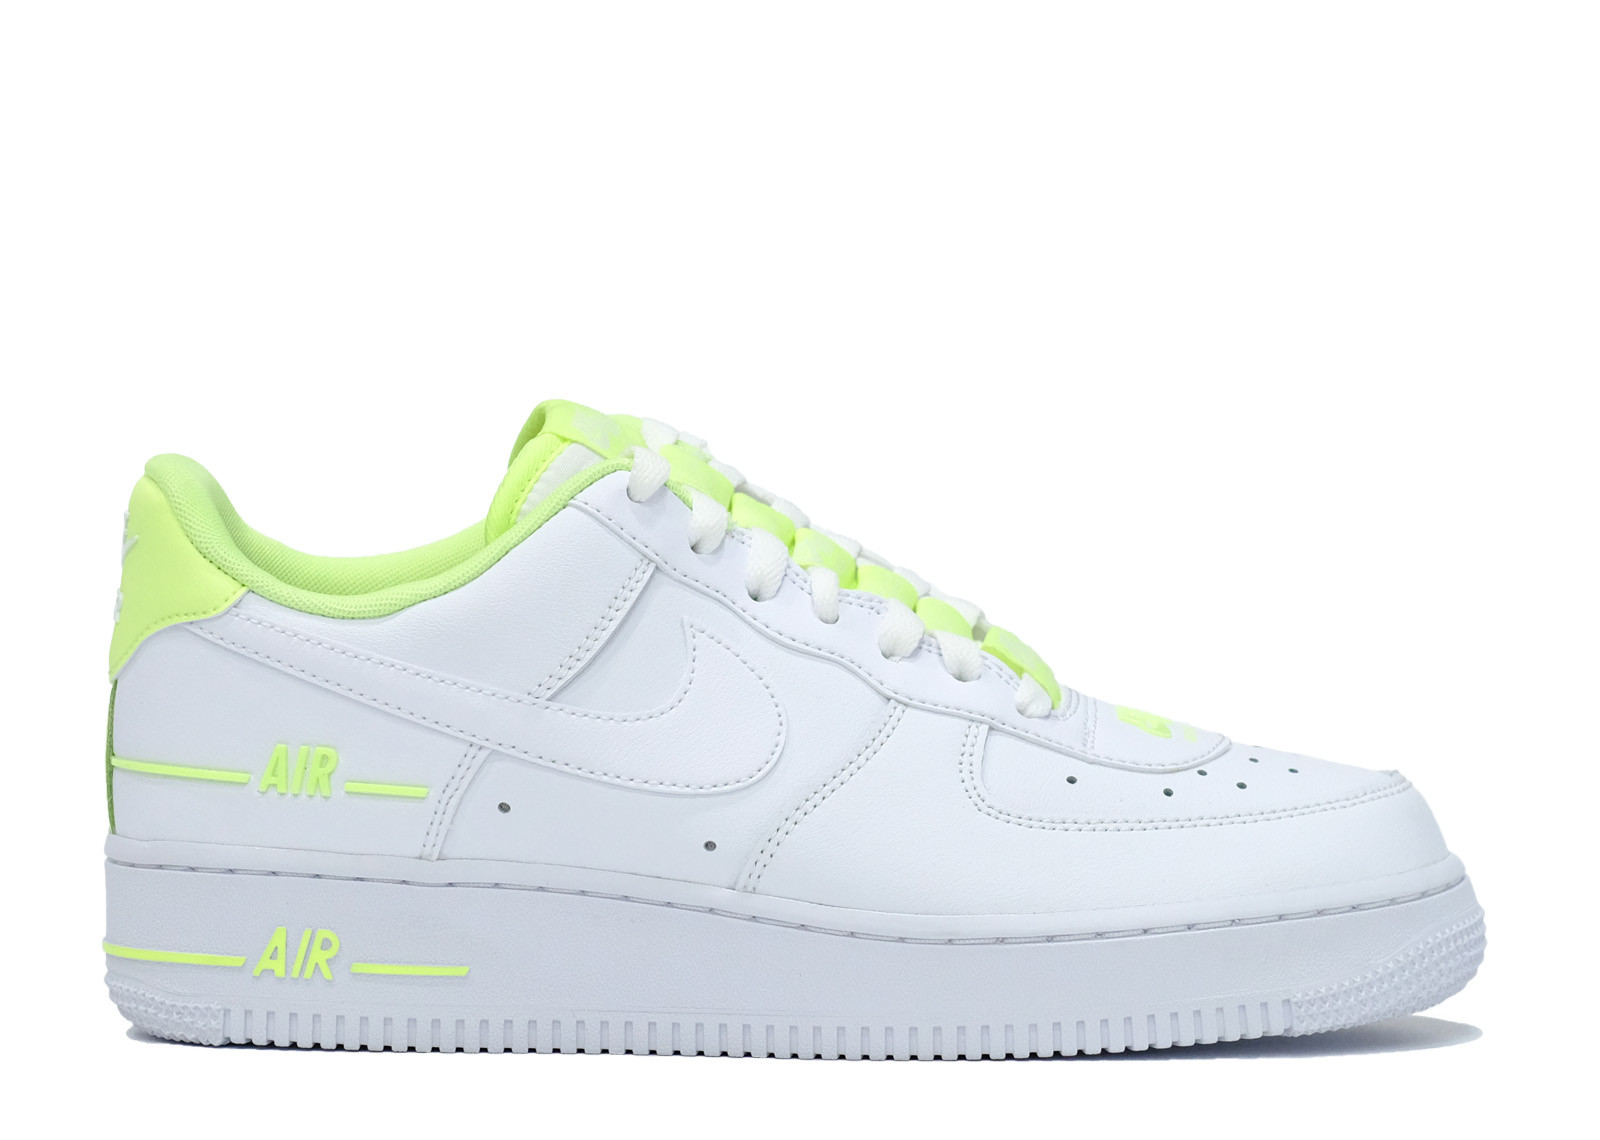 AIR FORCE 1 LOW DOUBLE AIR WHITE BARELY VOLT image 1